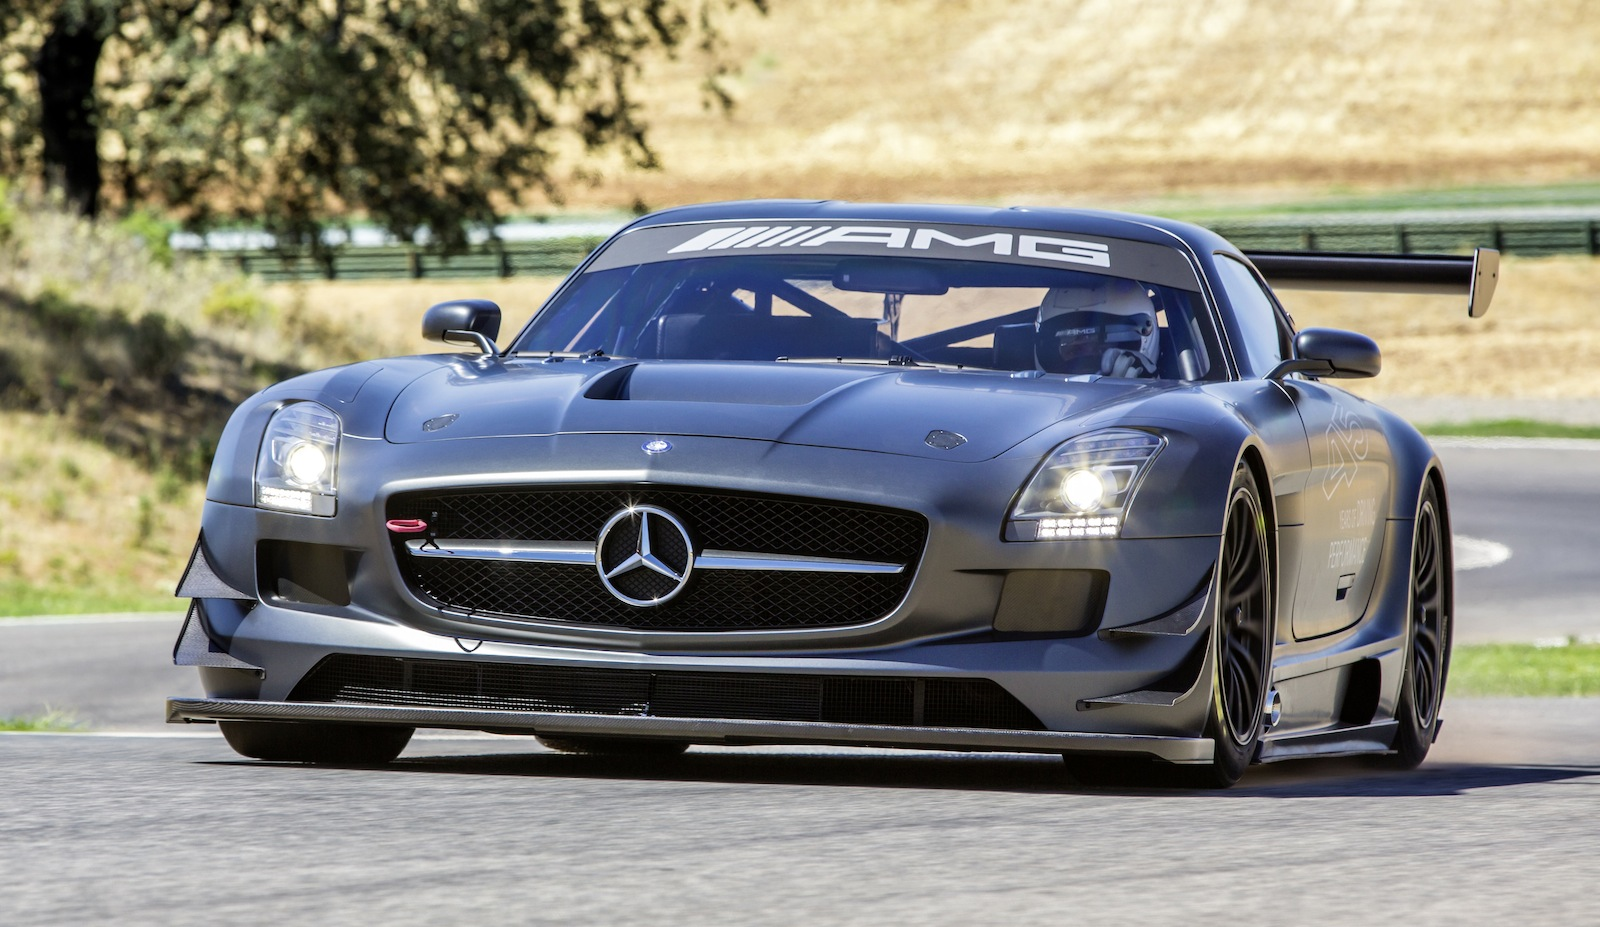 Mercedes Benz Sls Amg Gt3 45th Anniversary Edition Race